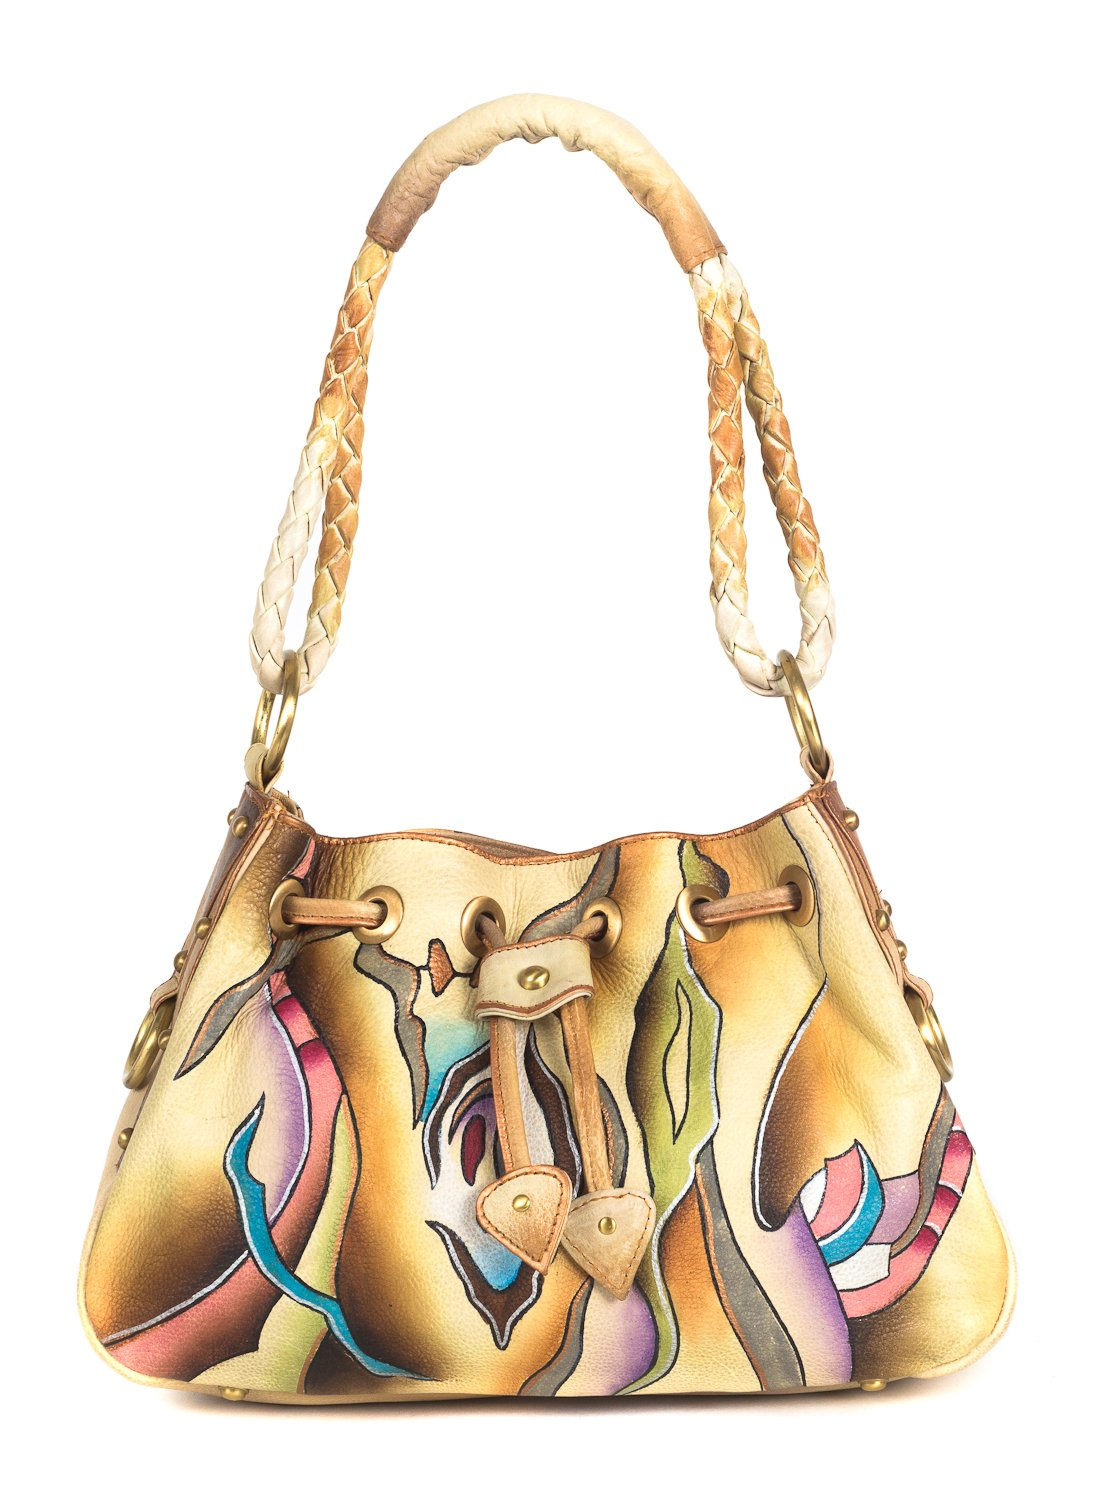 ZIMBELMANN PEGGY Genuine Nappa Leather Hand-painted Hobo Shoulder Bag by Zimbelmann